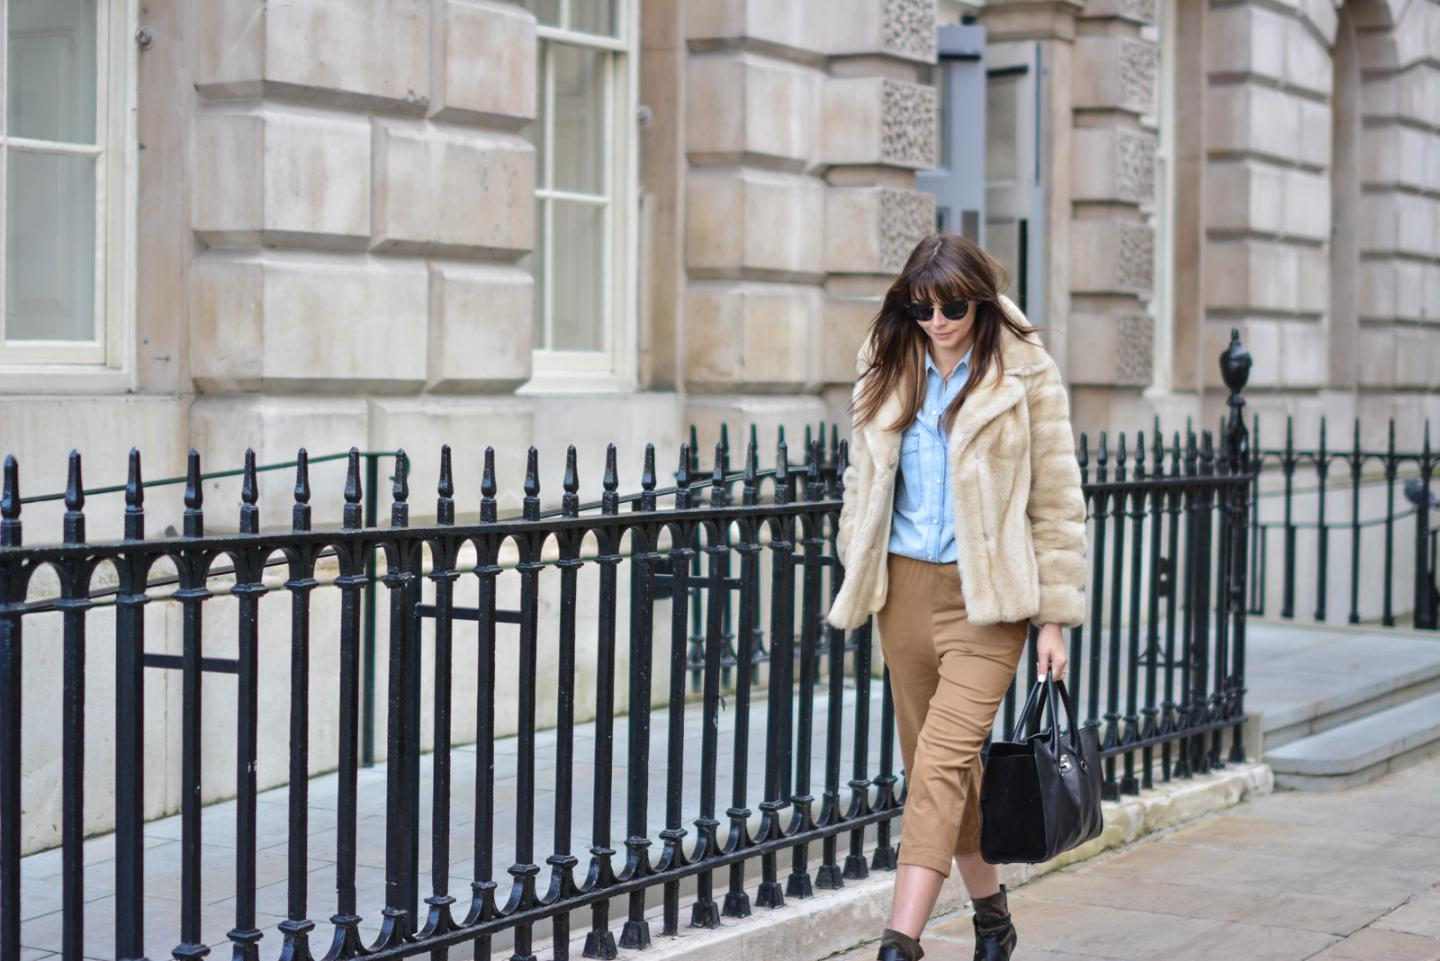 EJSTYLE - Emma Hill, London Fashion Week, LFW AW15, street style, 70's style, Denim shirt, suede culottes, isabel marant boots, jimmy choo bag, vintage faux fur coat